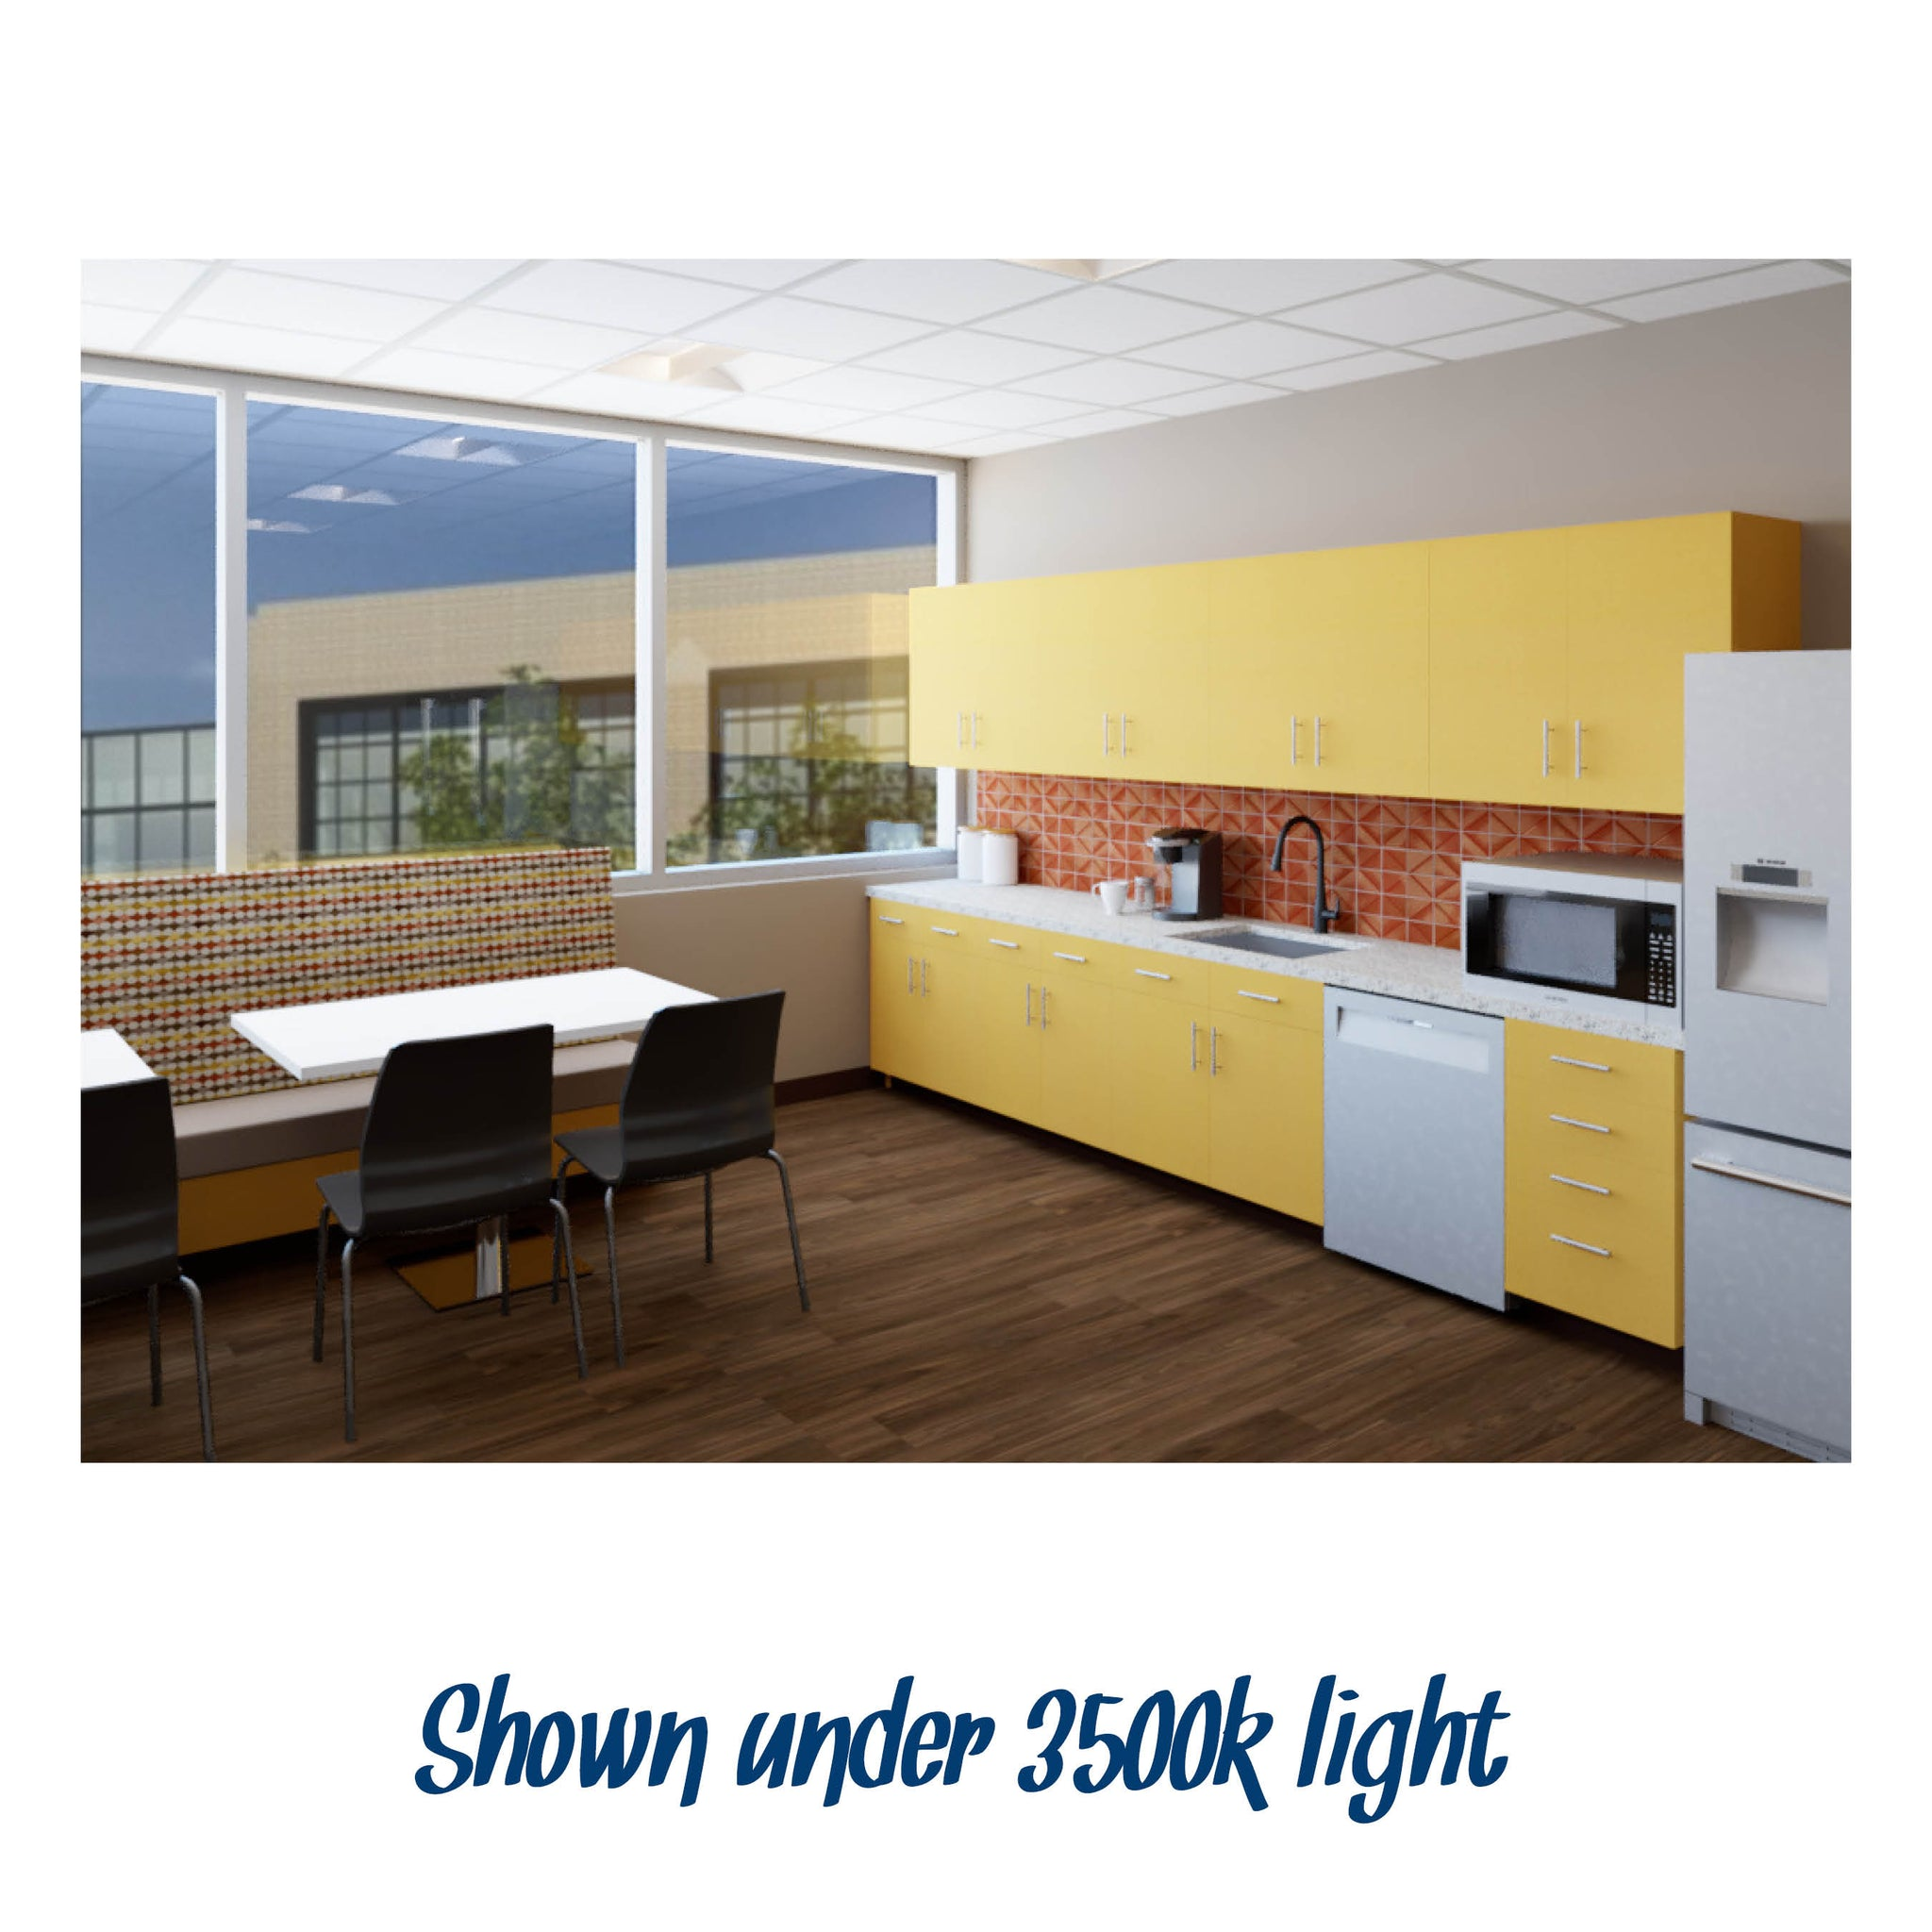 Break Room Warm Color #1 renderings shown under 3500k light